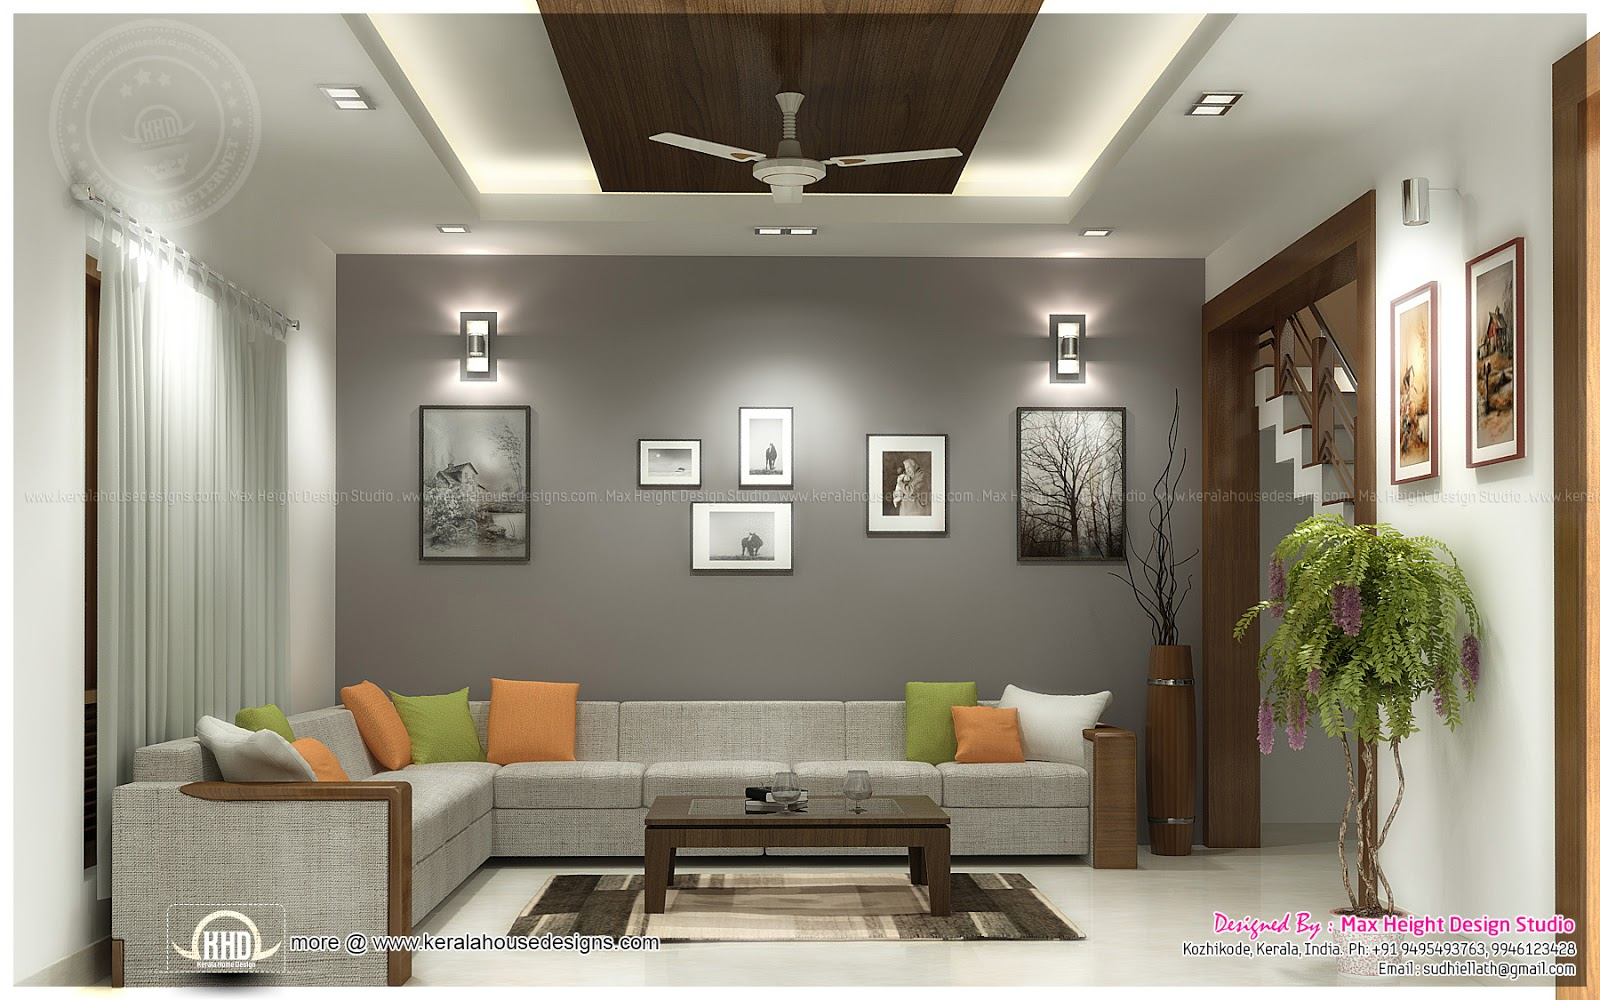 Beautiful interior ideas for home kerala home design and for Room interior ideas